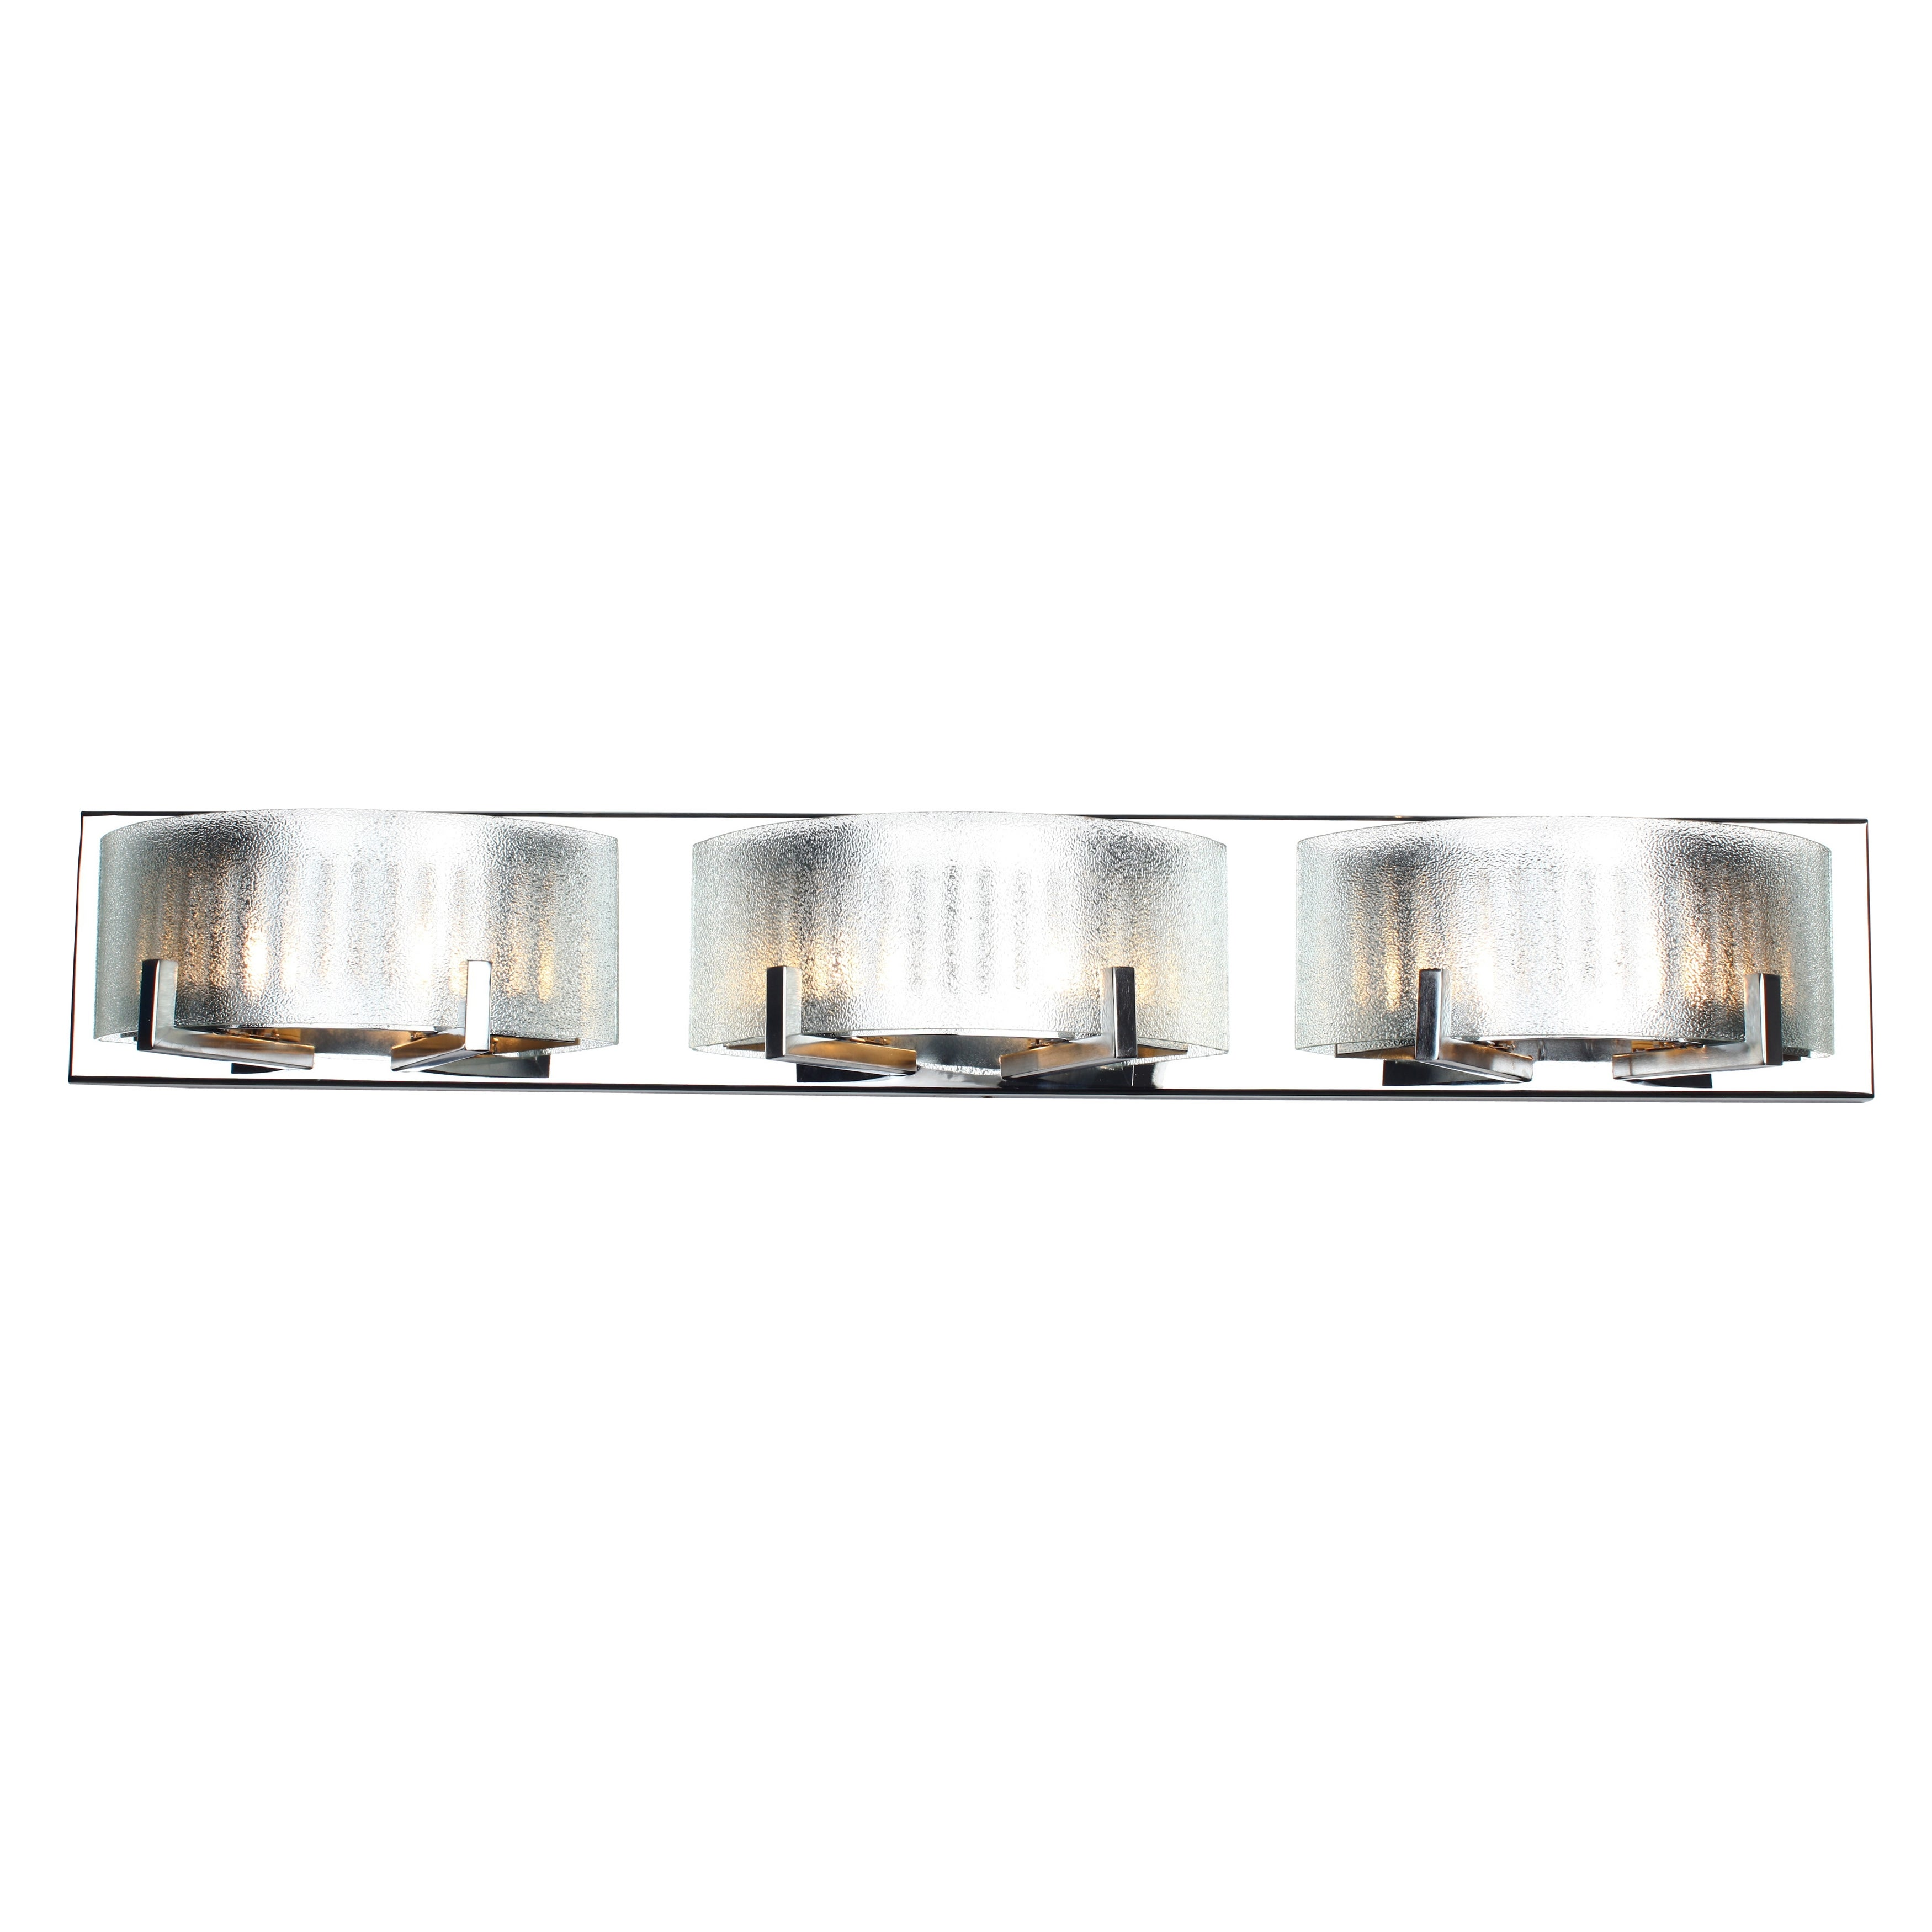 Alternating Current Firefly 6-light Chrome Vanity Fixture